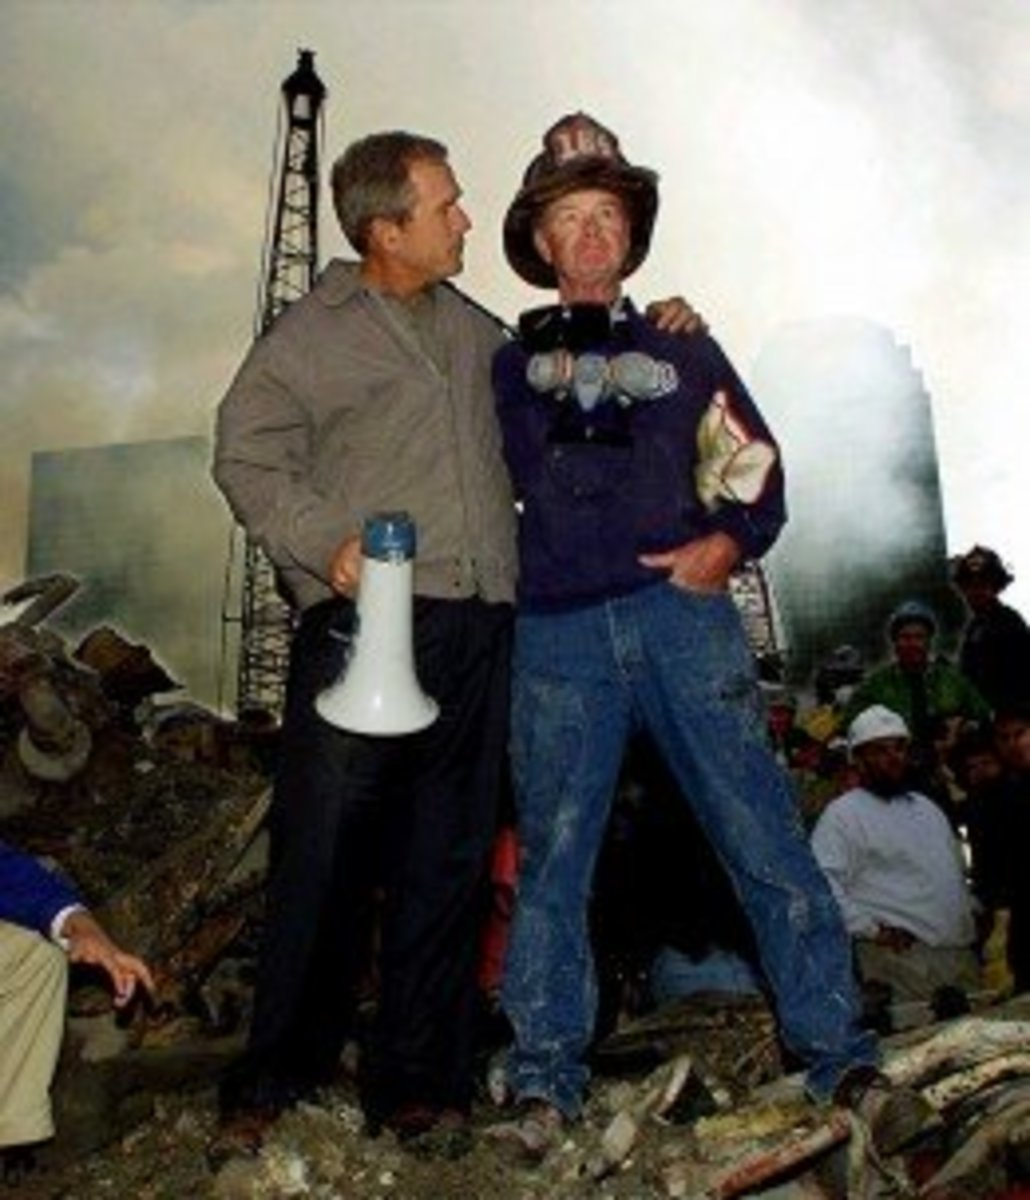 George Bush with a fireman wearing the number 164 on his helmet.